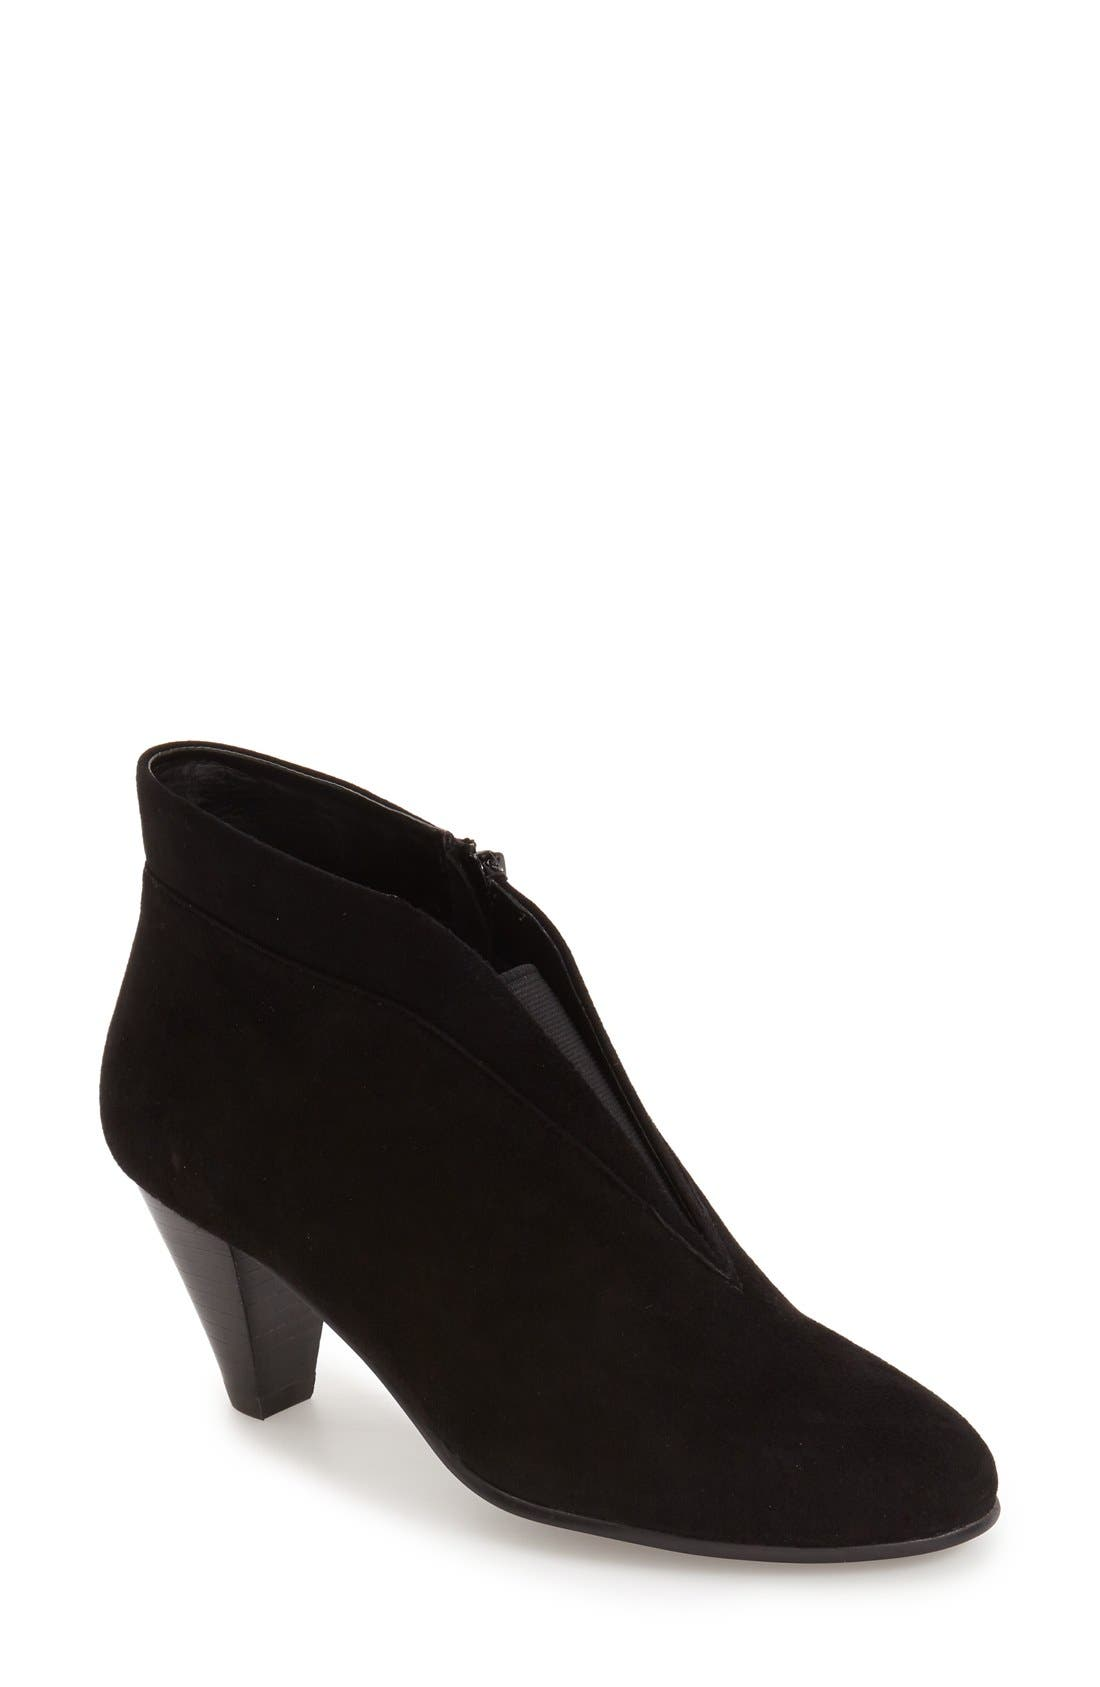 David Tate 'Natalie' V-Cut Zip Bootie (Women)